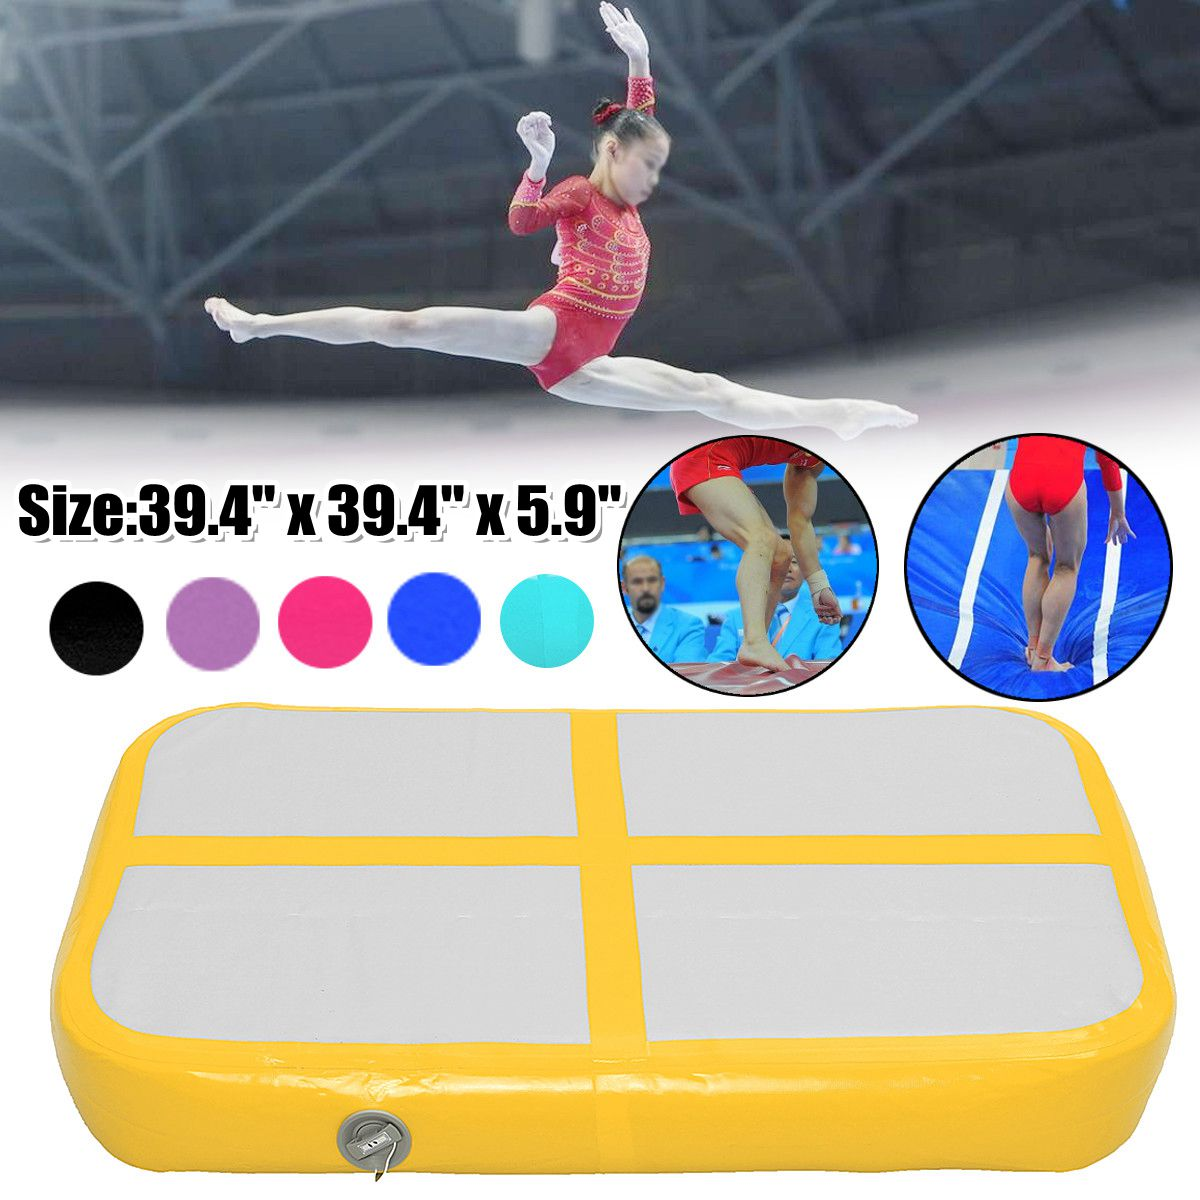 1mx0.6mx15cm Inflatable Cheap Gymnastics Mattress Gym Tumble Airtrack Floor Tumbling Air Track high quality 4 1 0 2m inflatable air track gymnastics air track trampoline for water games